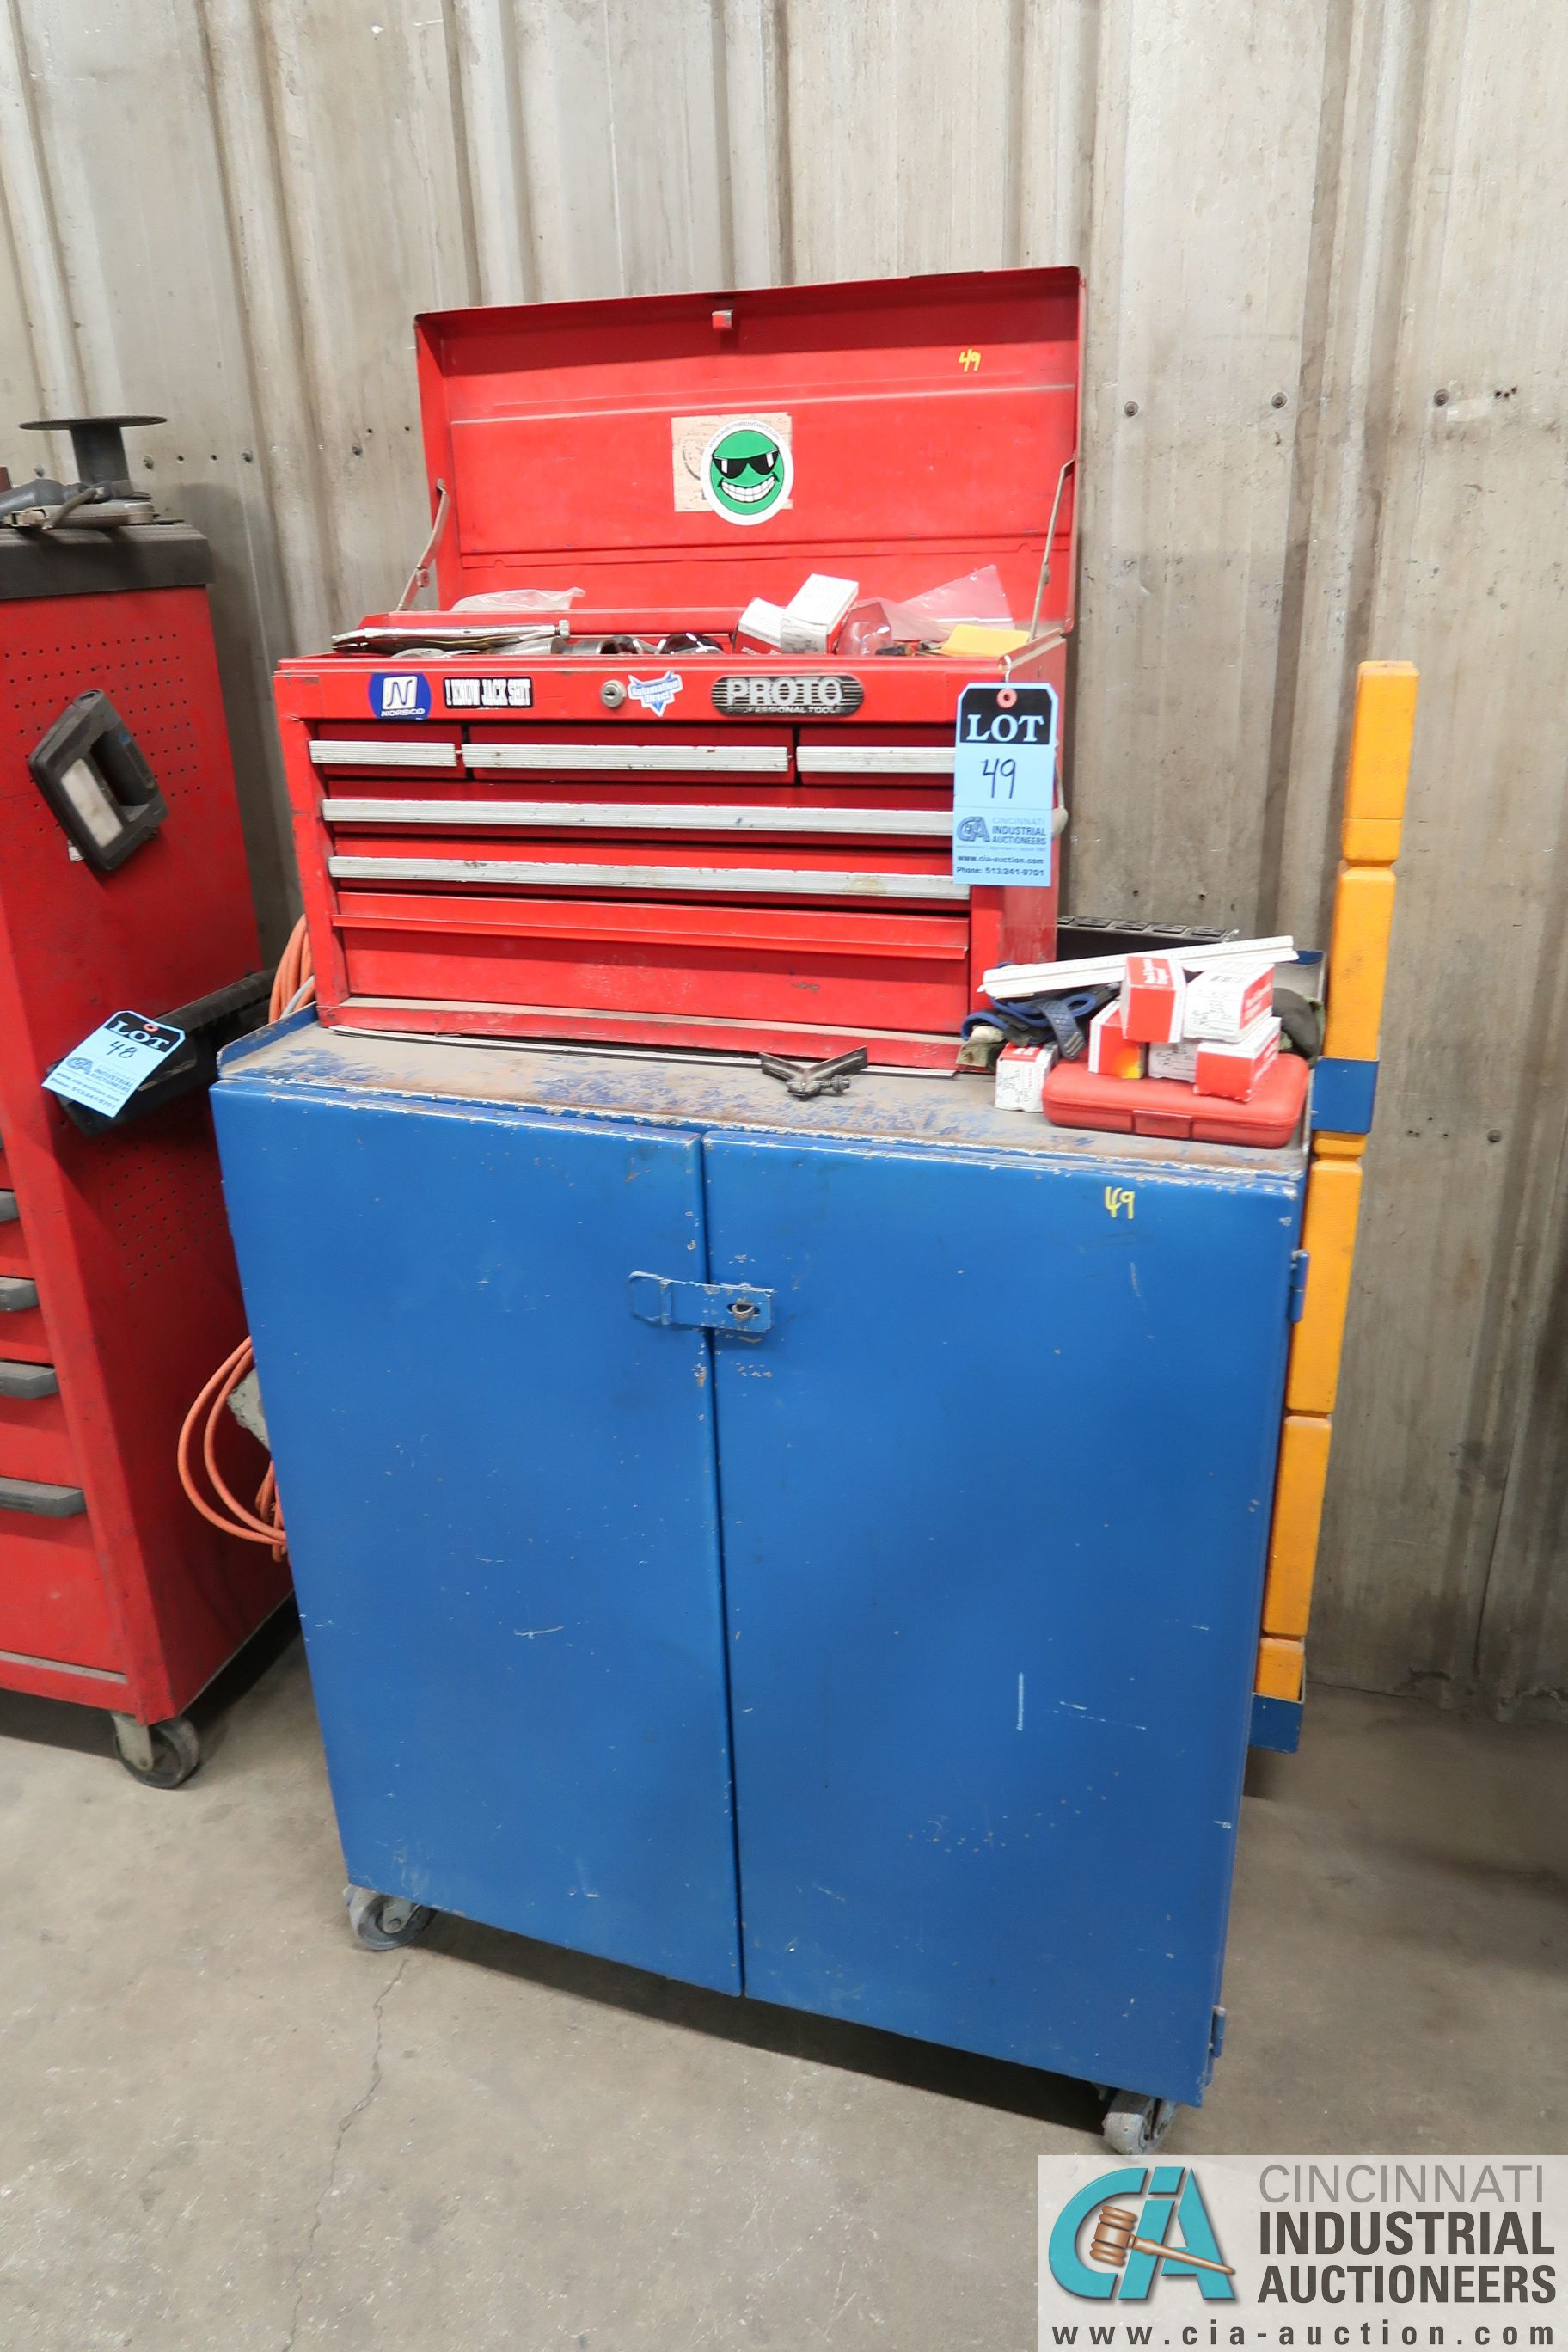 (LOT) 6-DRAWER TOOL BOX WITH PORTABLE 2-DOOR CABINET AND TOOLS